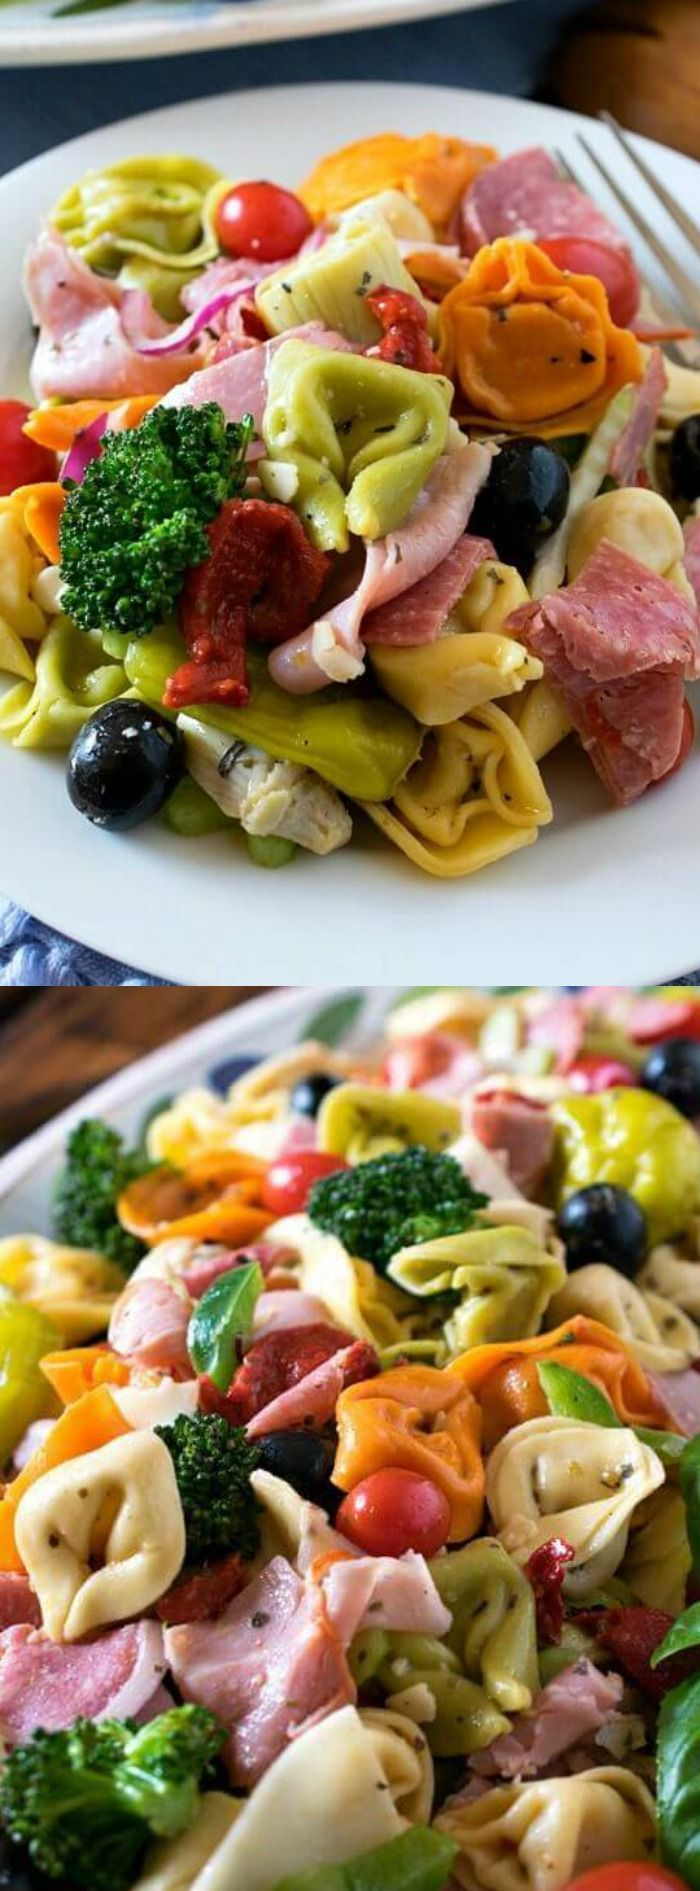 This delicious Italian Tortellini Salad recipe from A Family Feast should definitely make a regular appearance on the menu at your summer parties!  It's the perfect side dish to serve alongside any grilled foods like burgers, hot dogs, steak or chicken… a